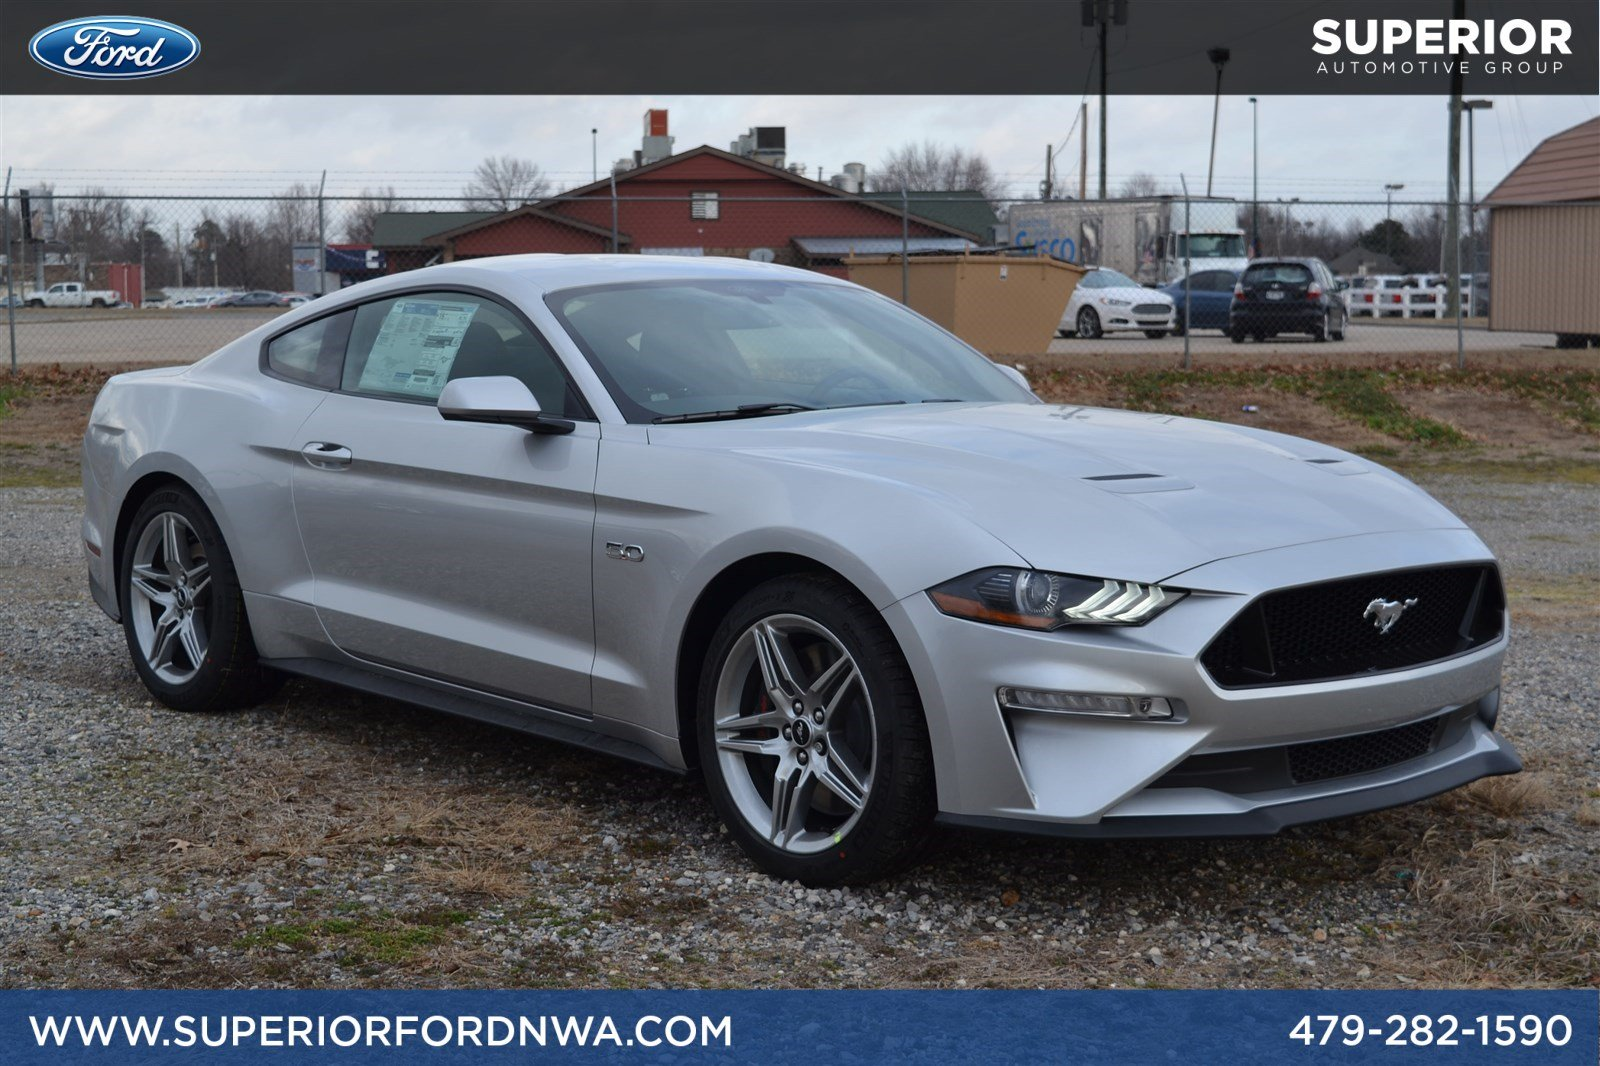 New 2018 Ford Mustang Gt 2dr Car In Fayetteville F121117 Superior 2012 Boss 302 Keys